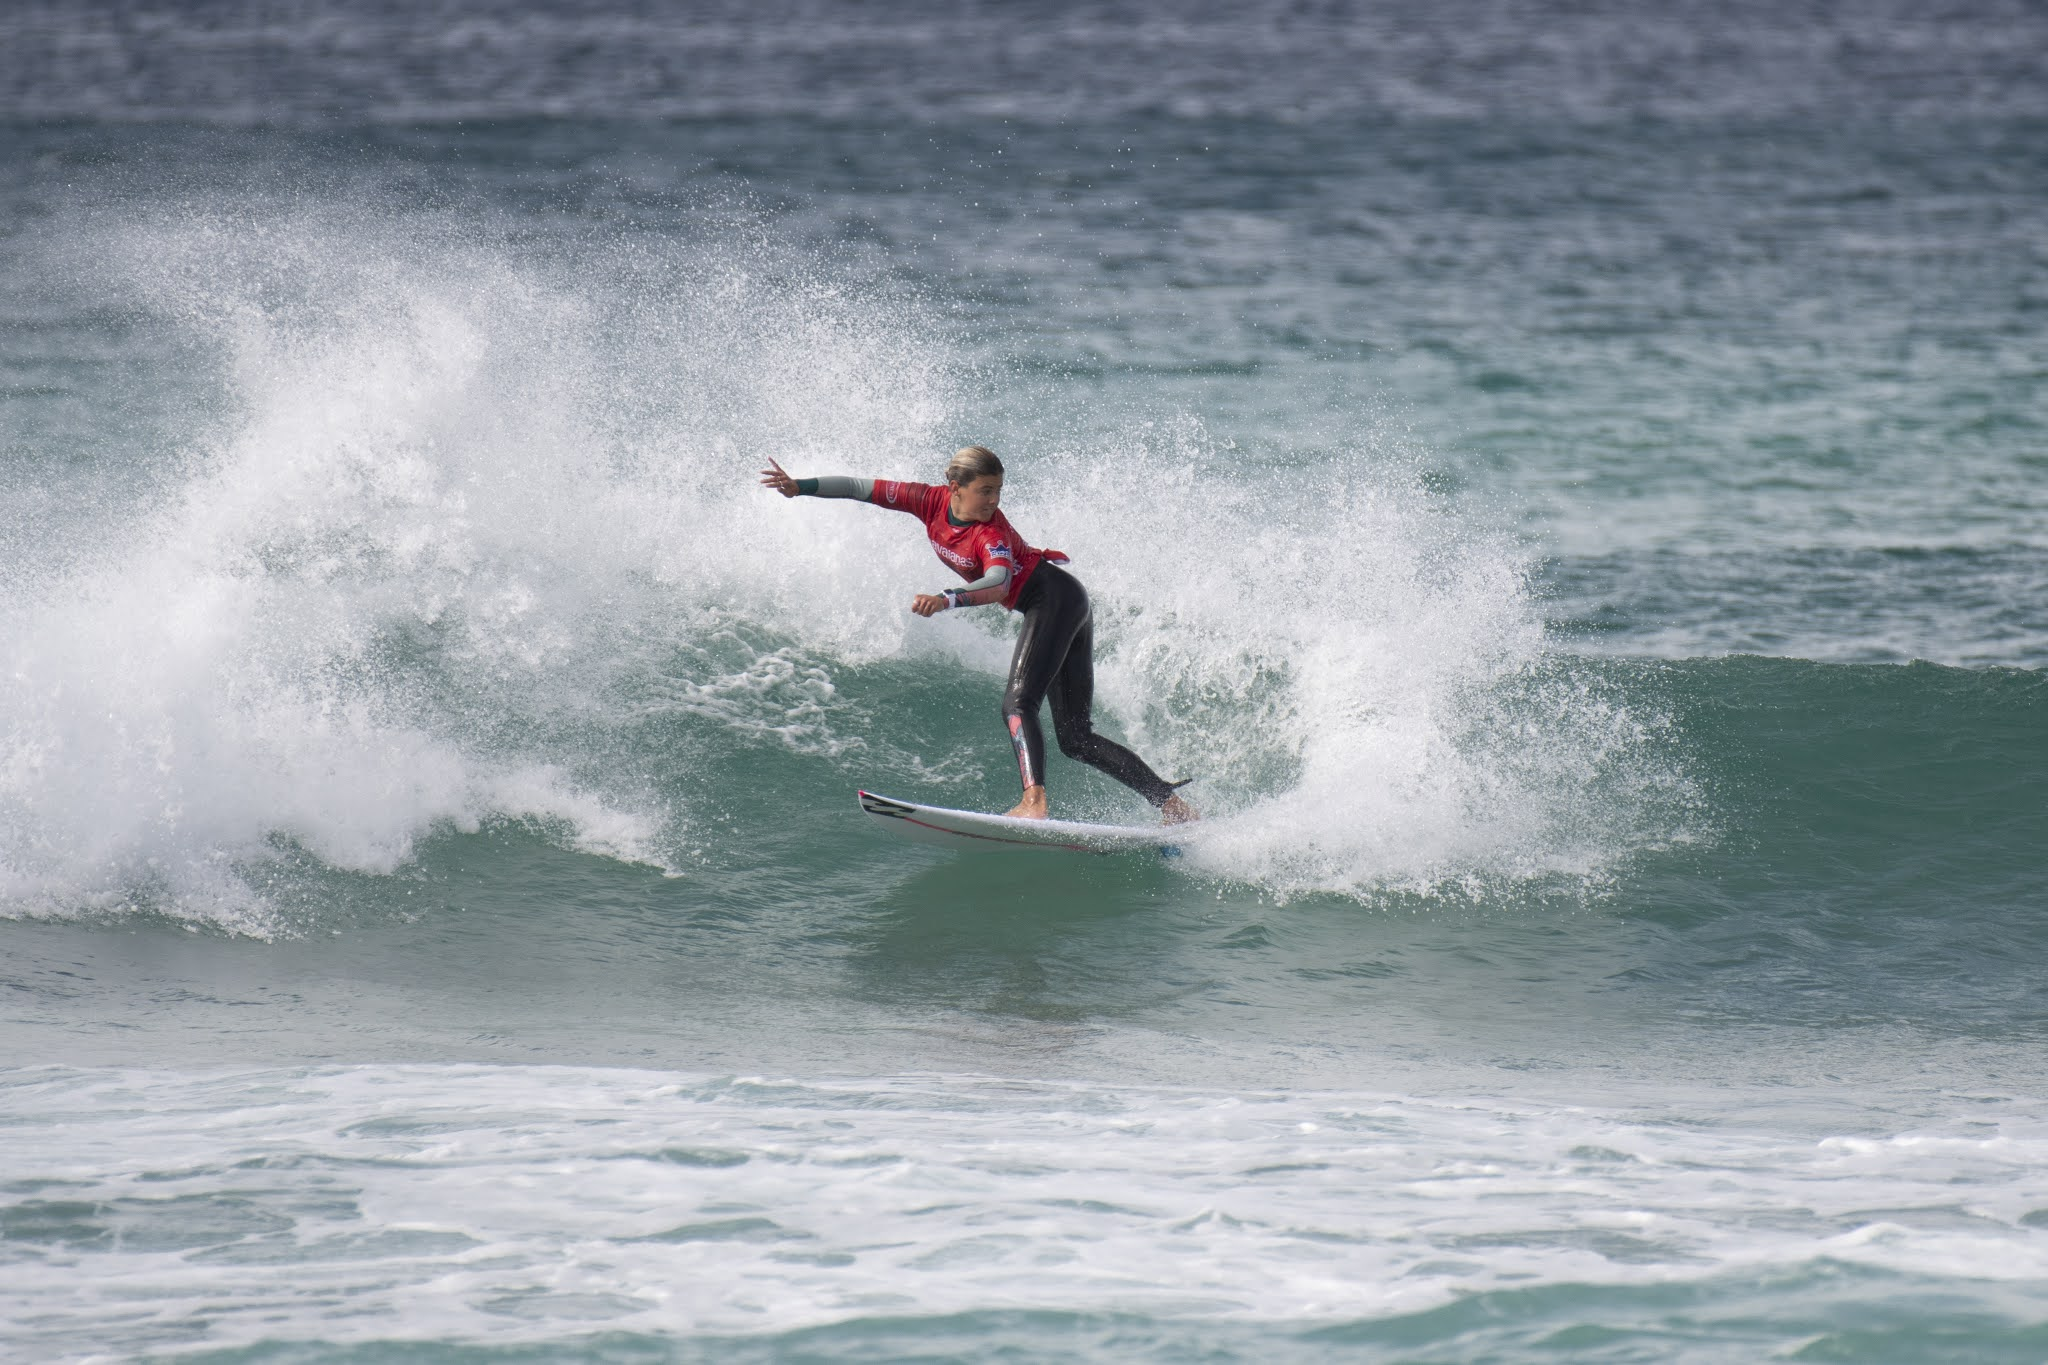 Juniper Harper (Lennox Head) took out the win for the under 14 girls division at the 2020 Havaianas NSW Grommet State Titles.